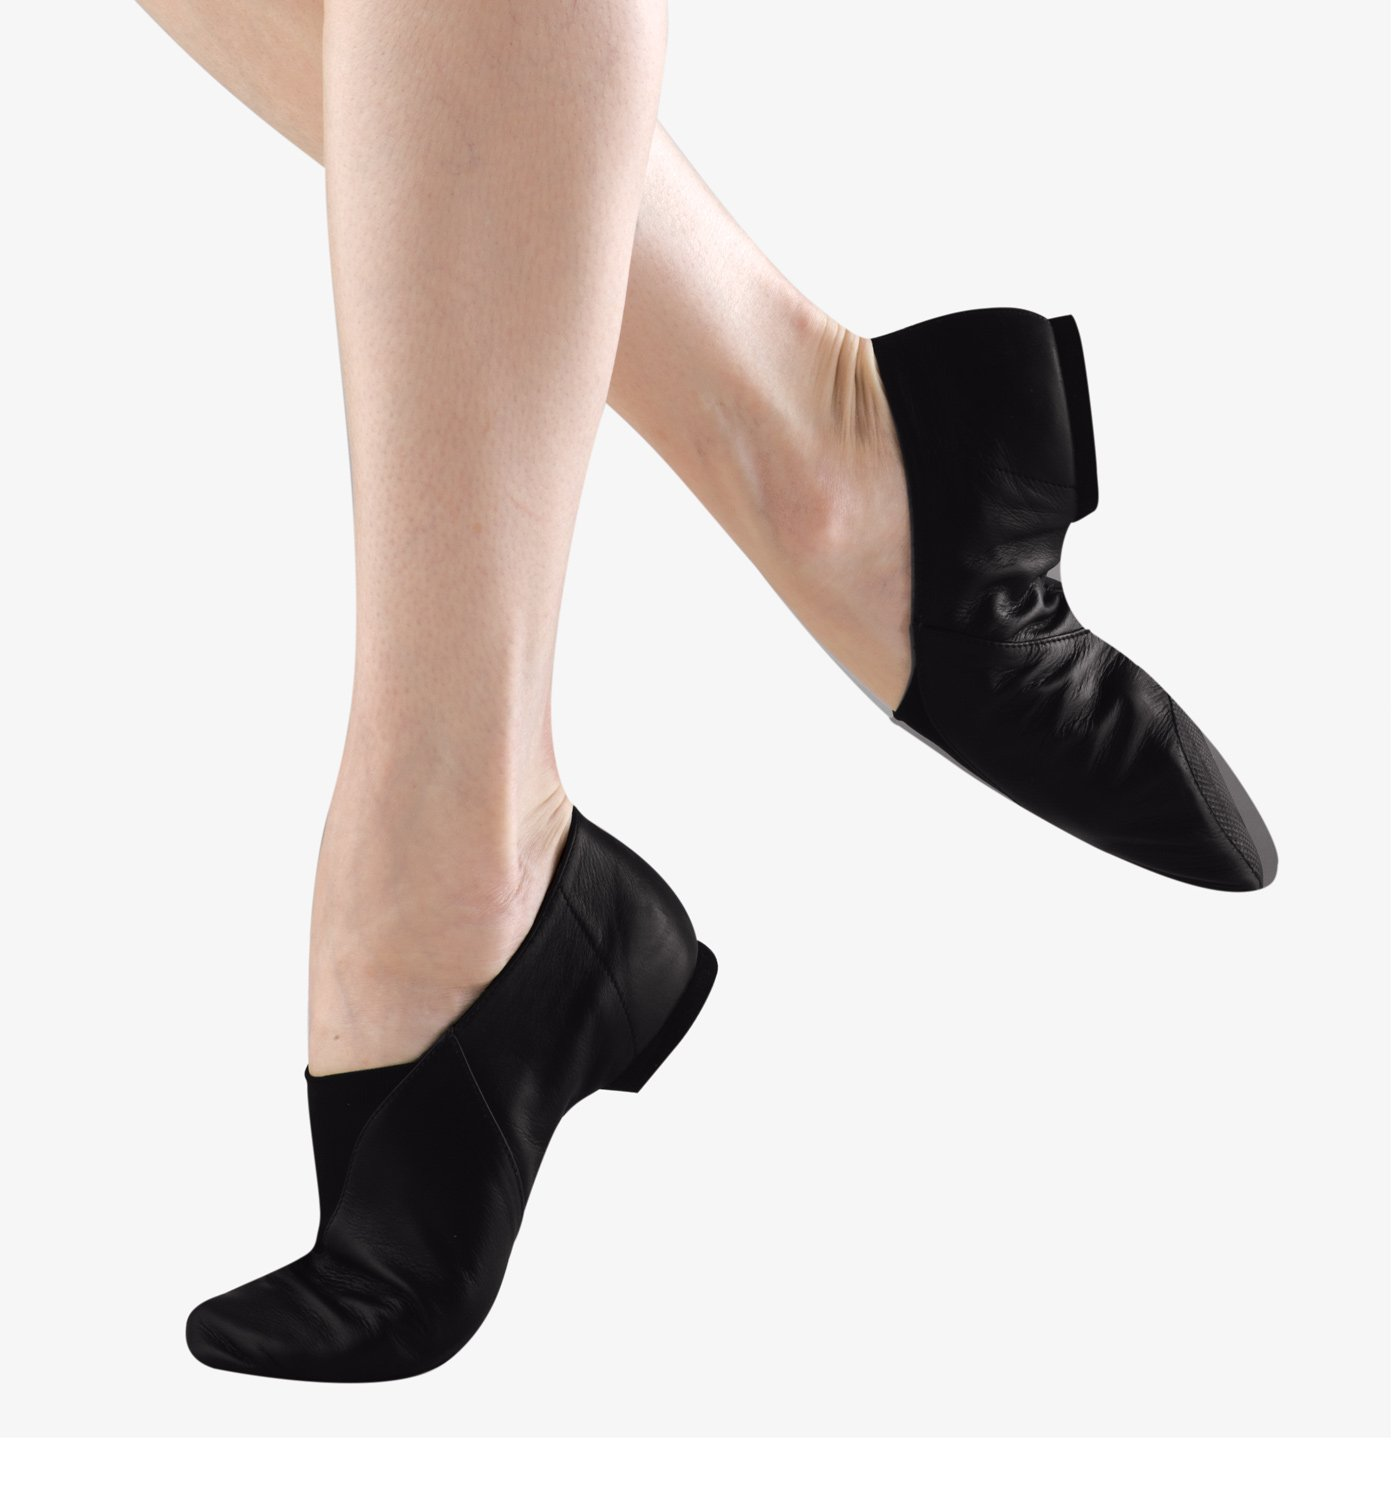 Jazz Shoes For Flat Feet